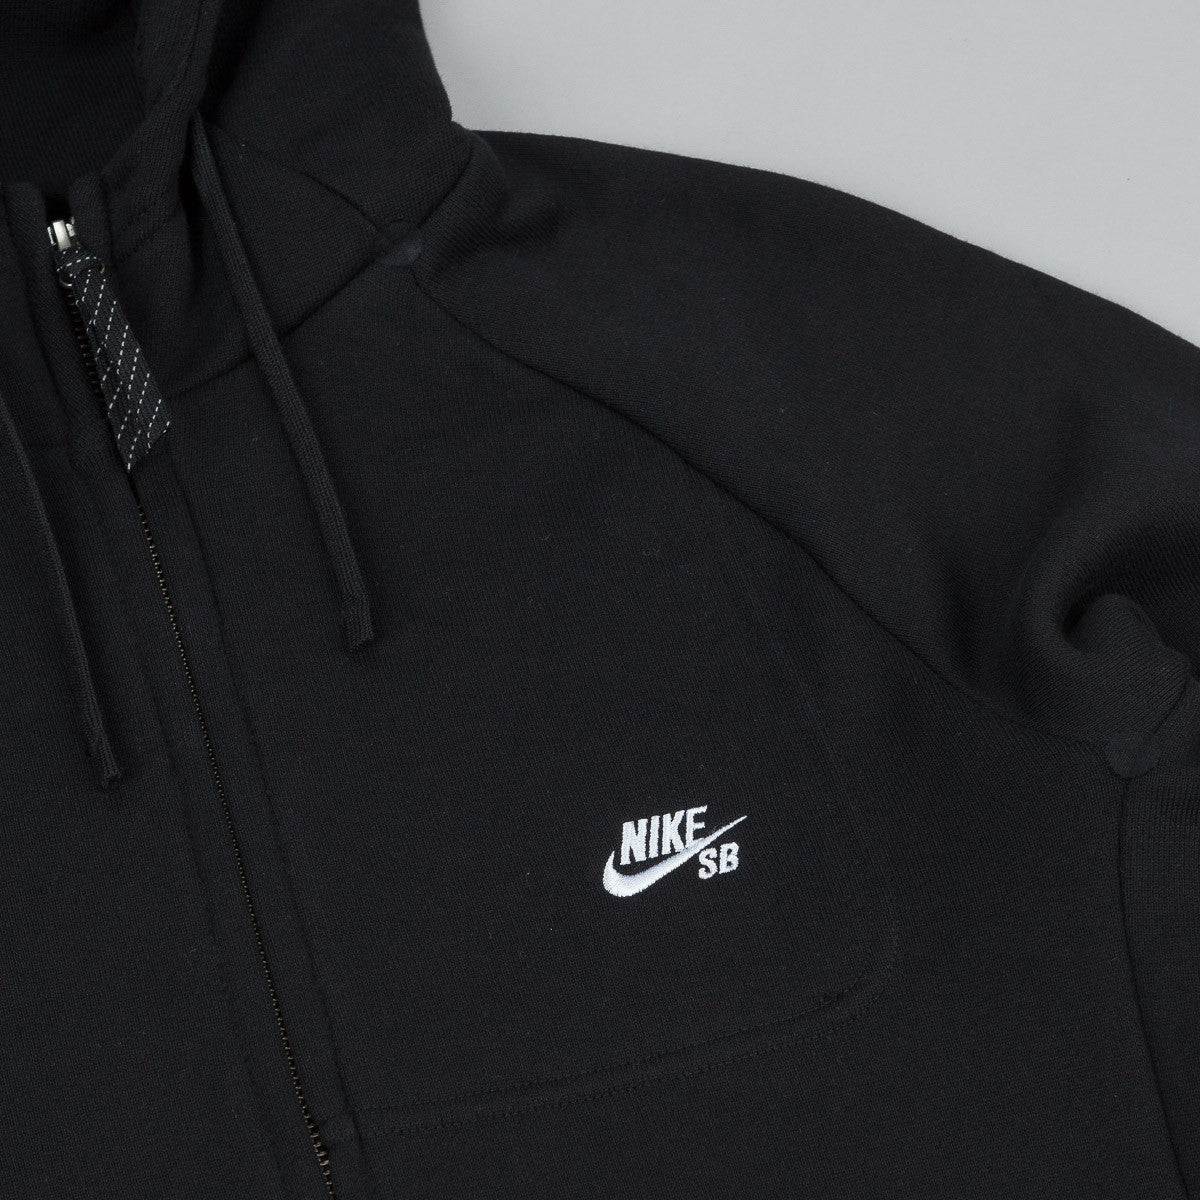 Nike SB Everett Graphic Zip Hooded Sweatshirt - Black / White